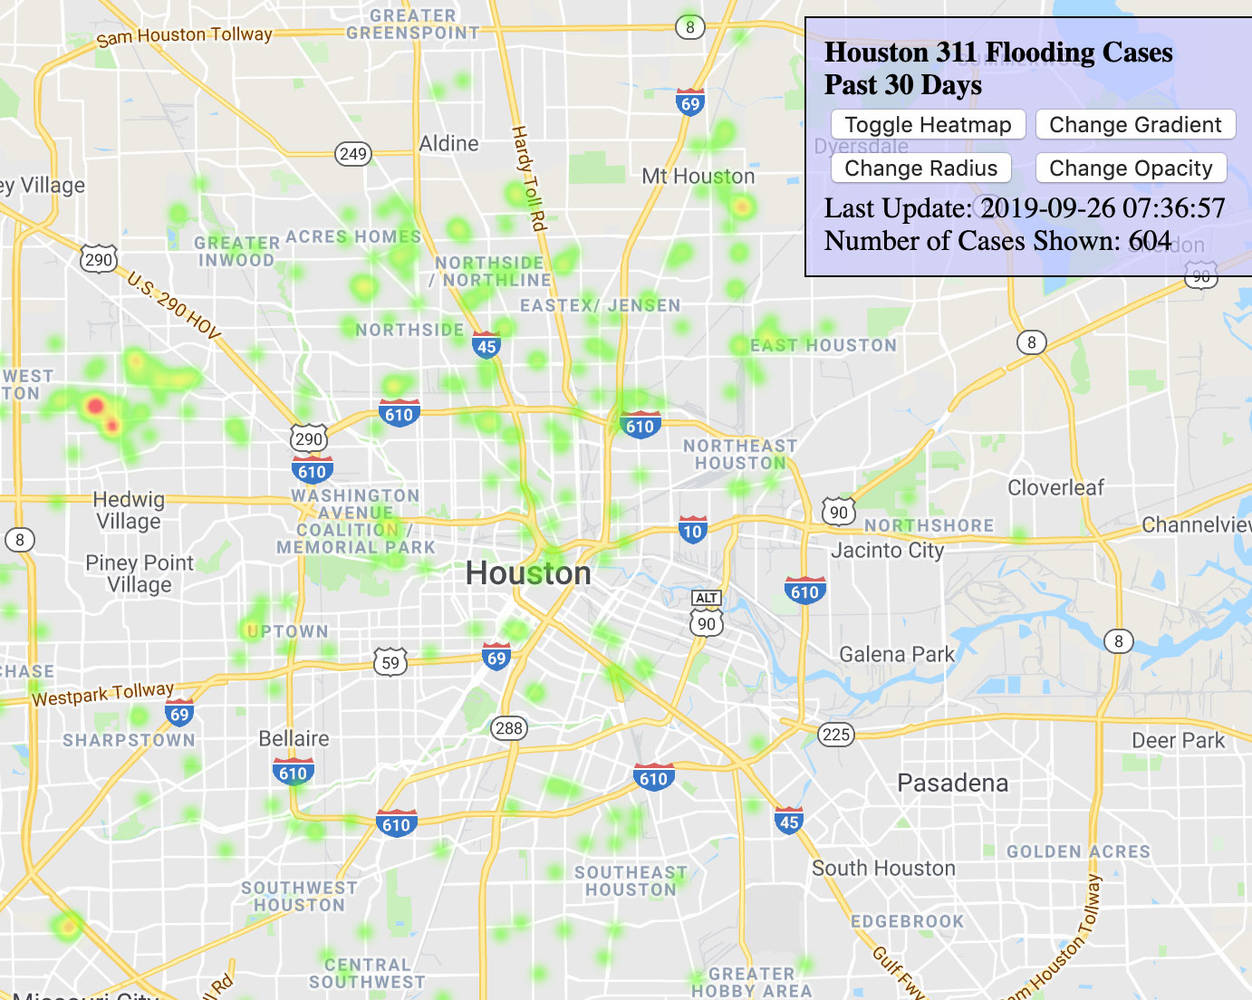 Houston 311 Service Requests Heatmap During Imelda